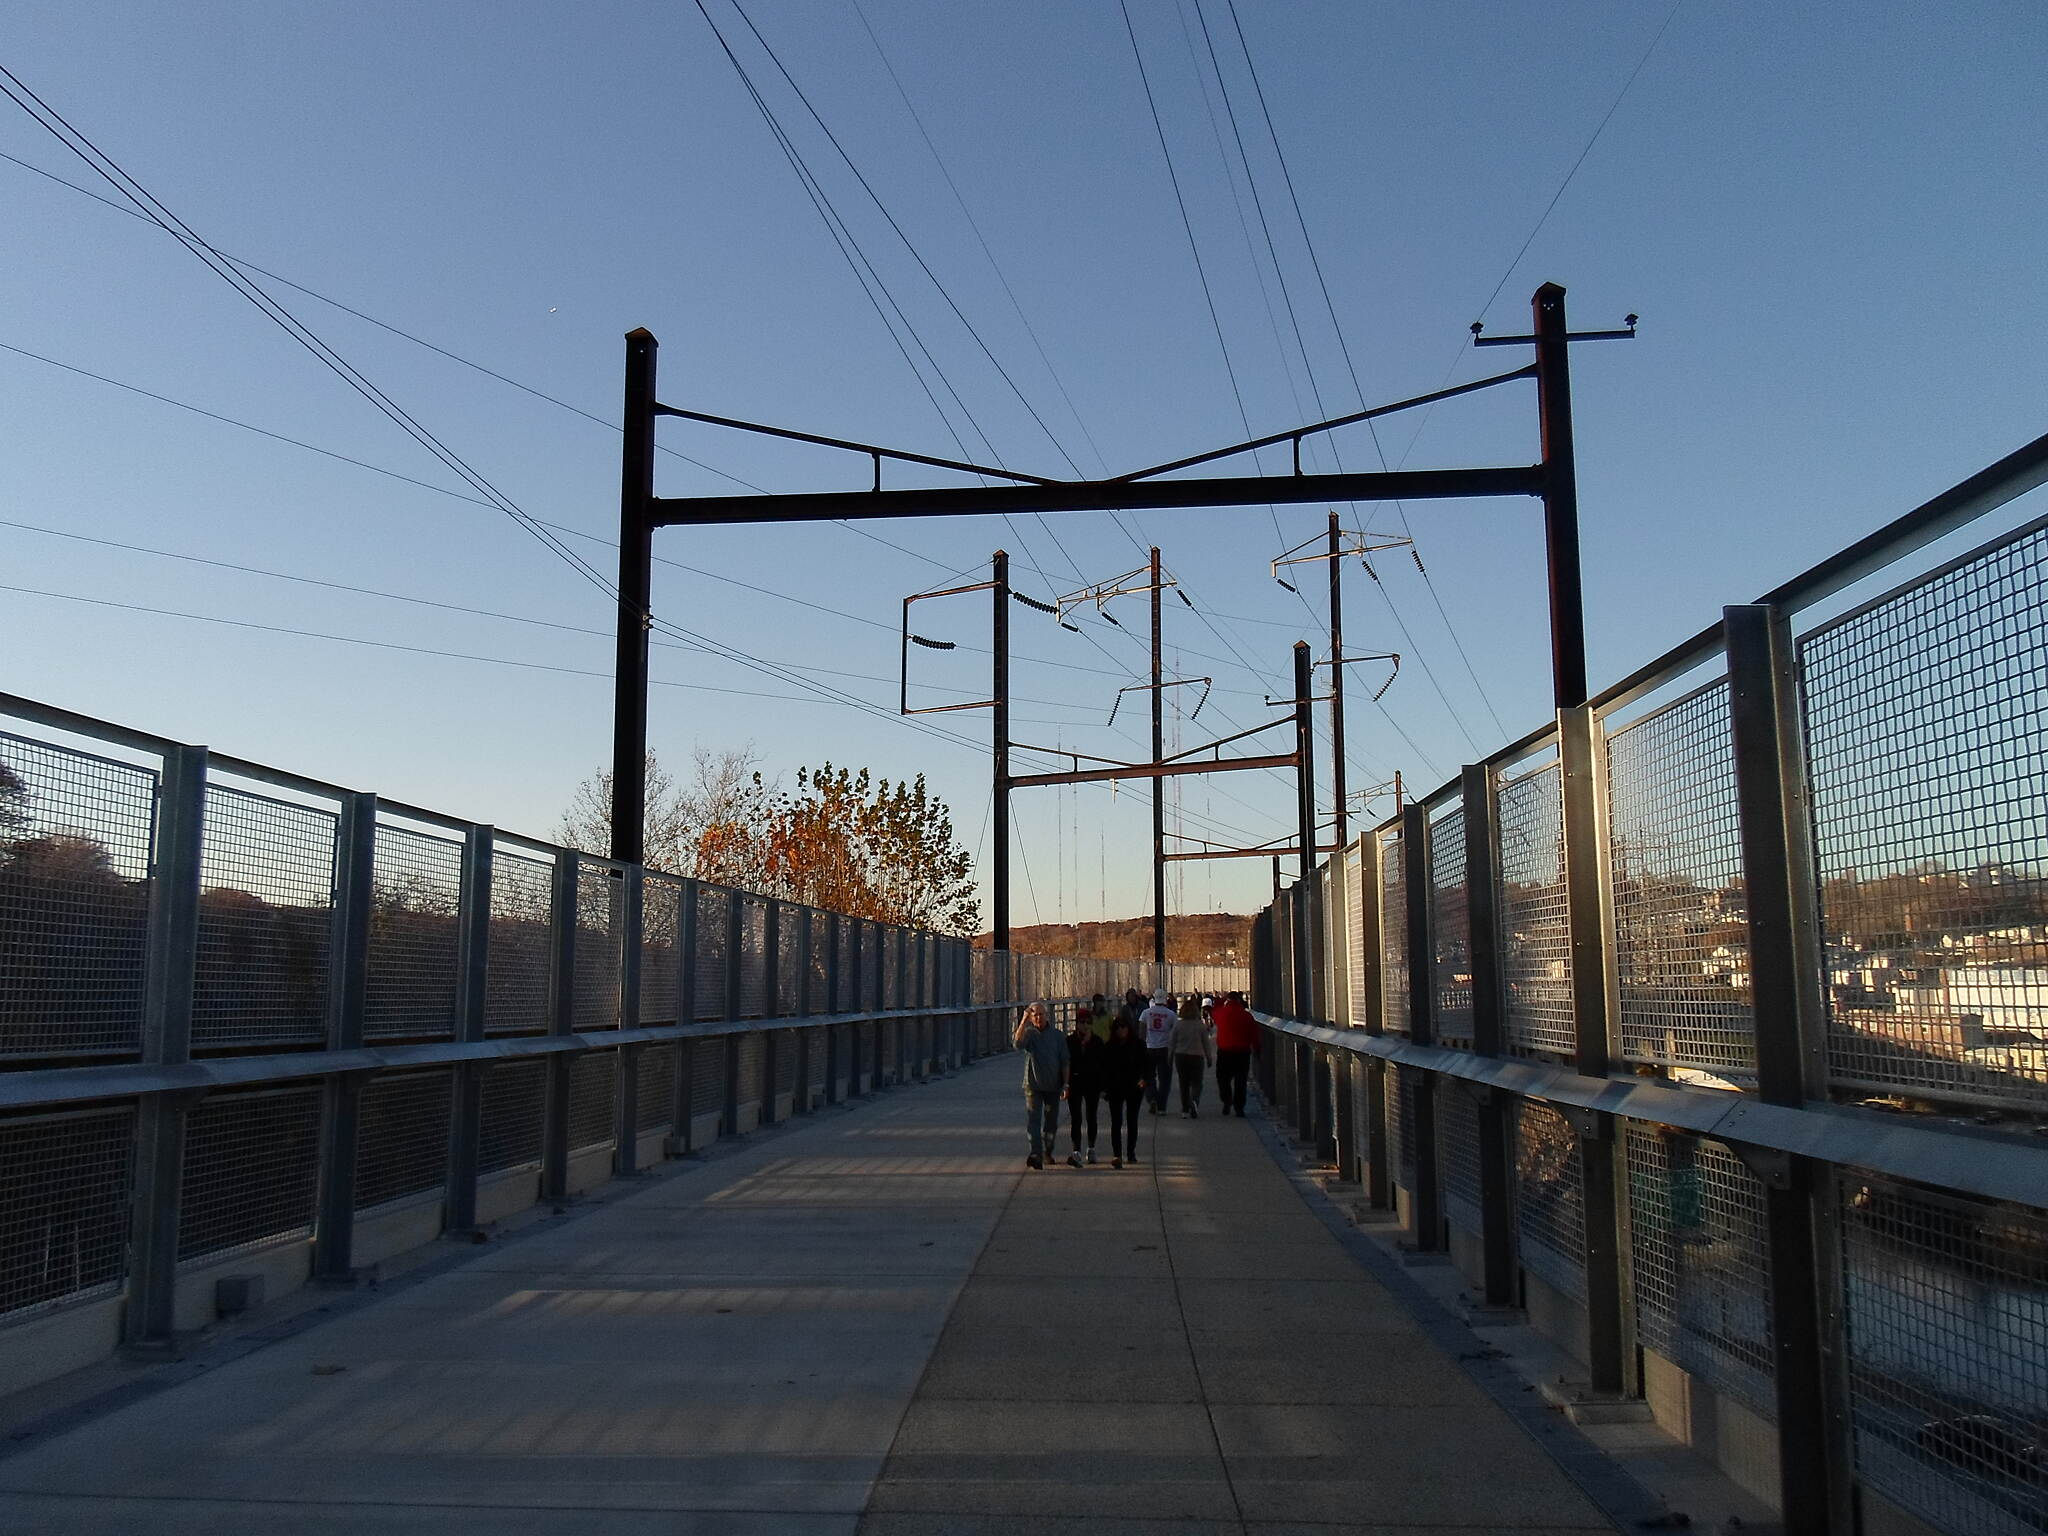 Manayunk Bridge Trail Manayunk Bridge Trail Passing under one of the old catenary supports that are still above the bridge. Taken Nov. 2015.